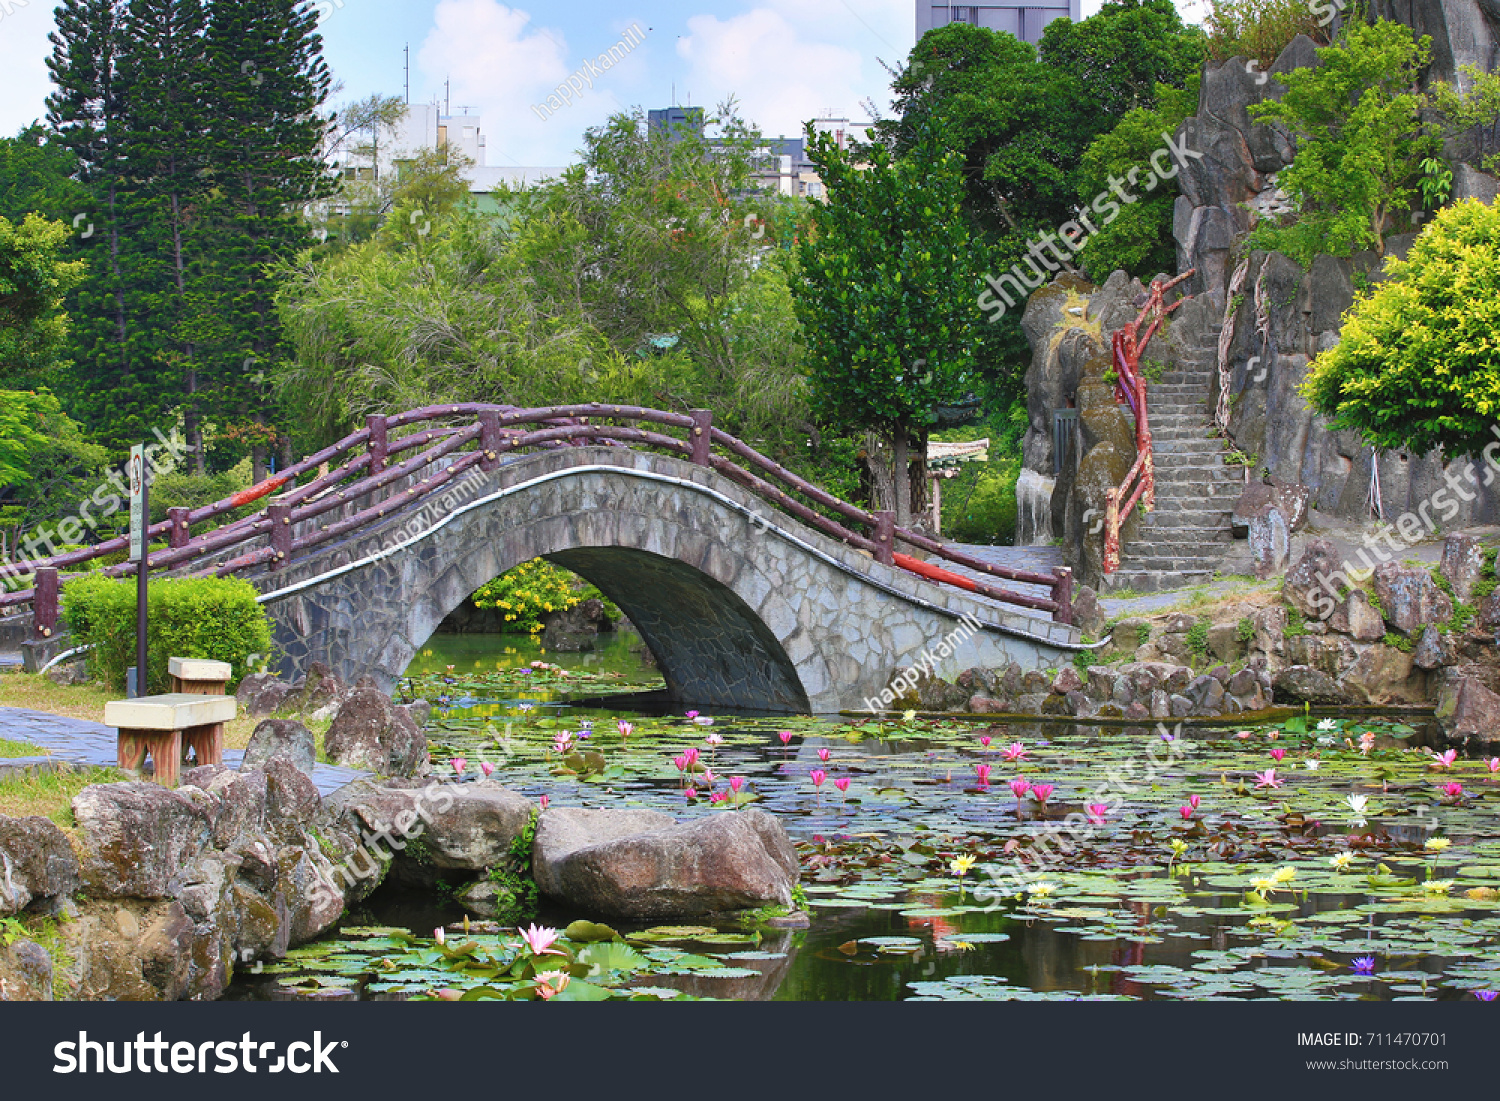 Beautiful garden scenery lotus flowers leaves stock photo edit now beautiful garden scenery of lotus flowers and leaves with stone bridge and stairs in the pond izmirmasajfo